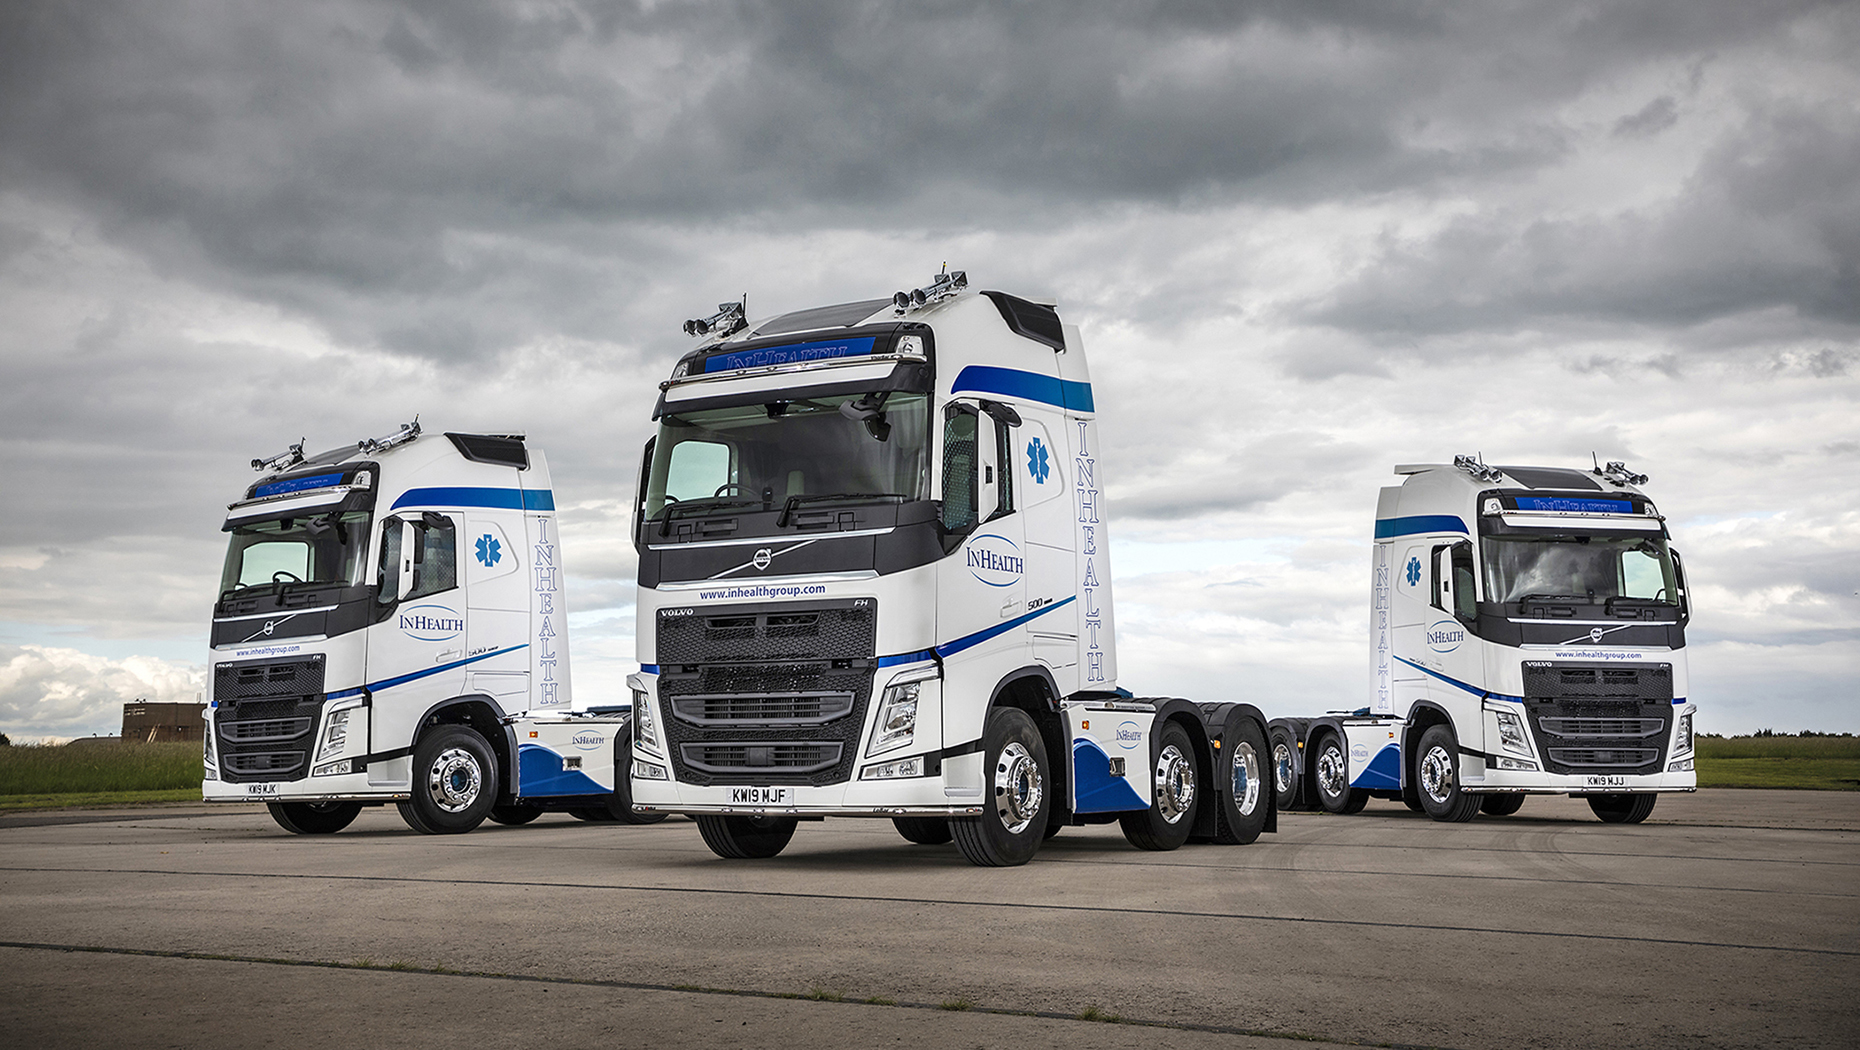 InHealth, the UK's leading provider of mobile medical diagnostic services, updates its fleet with three new Volvo FH tractor units